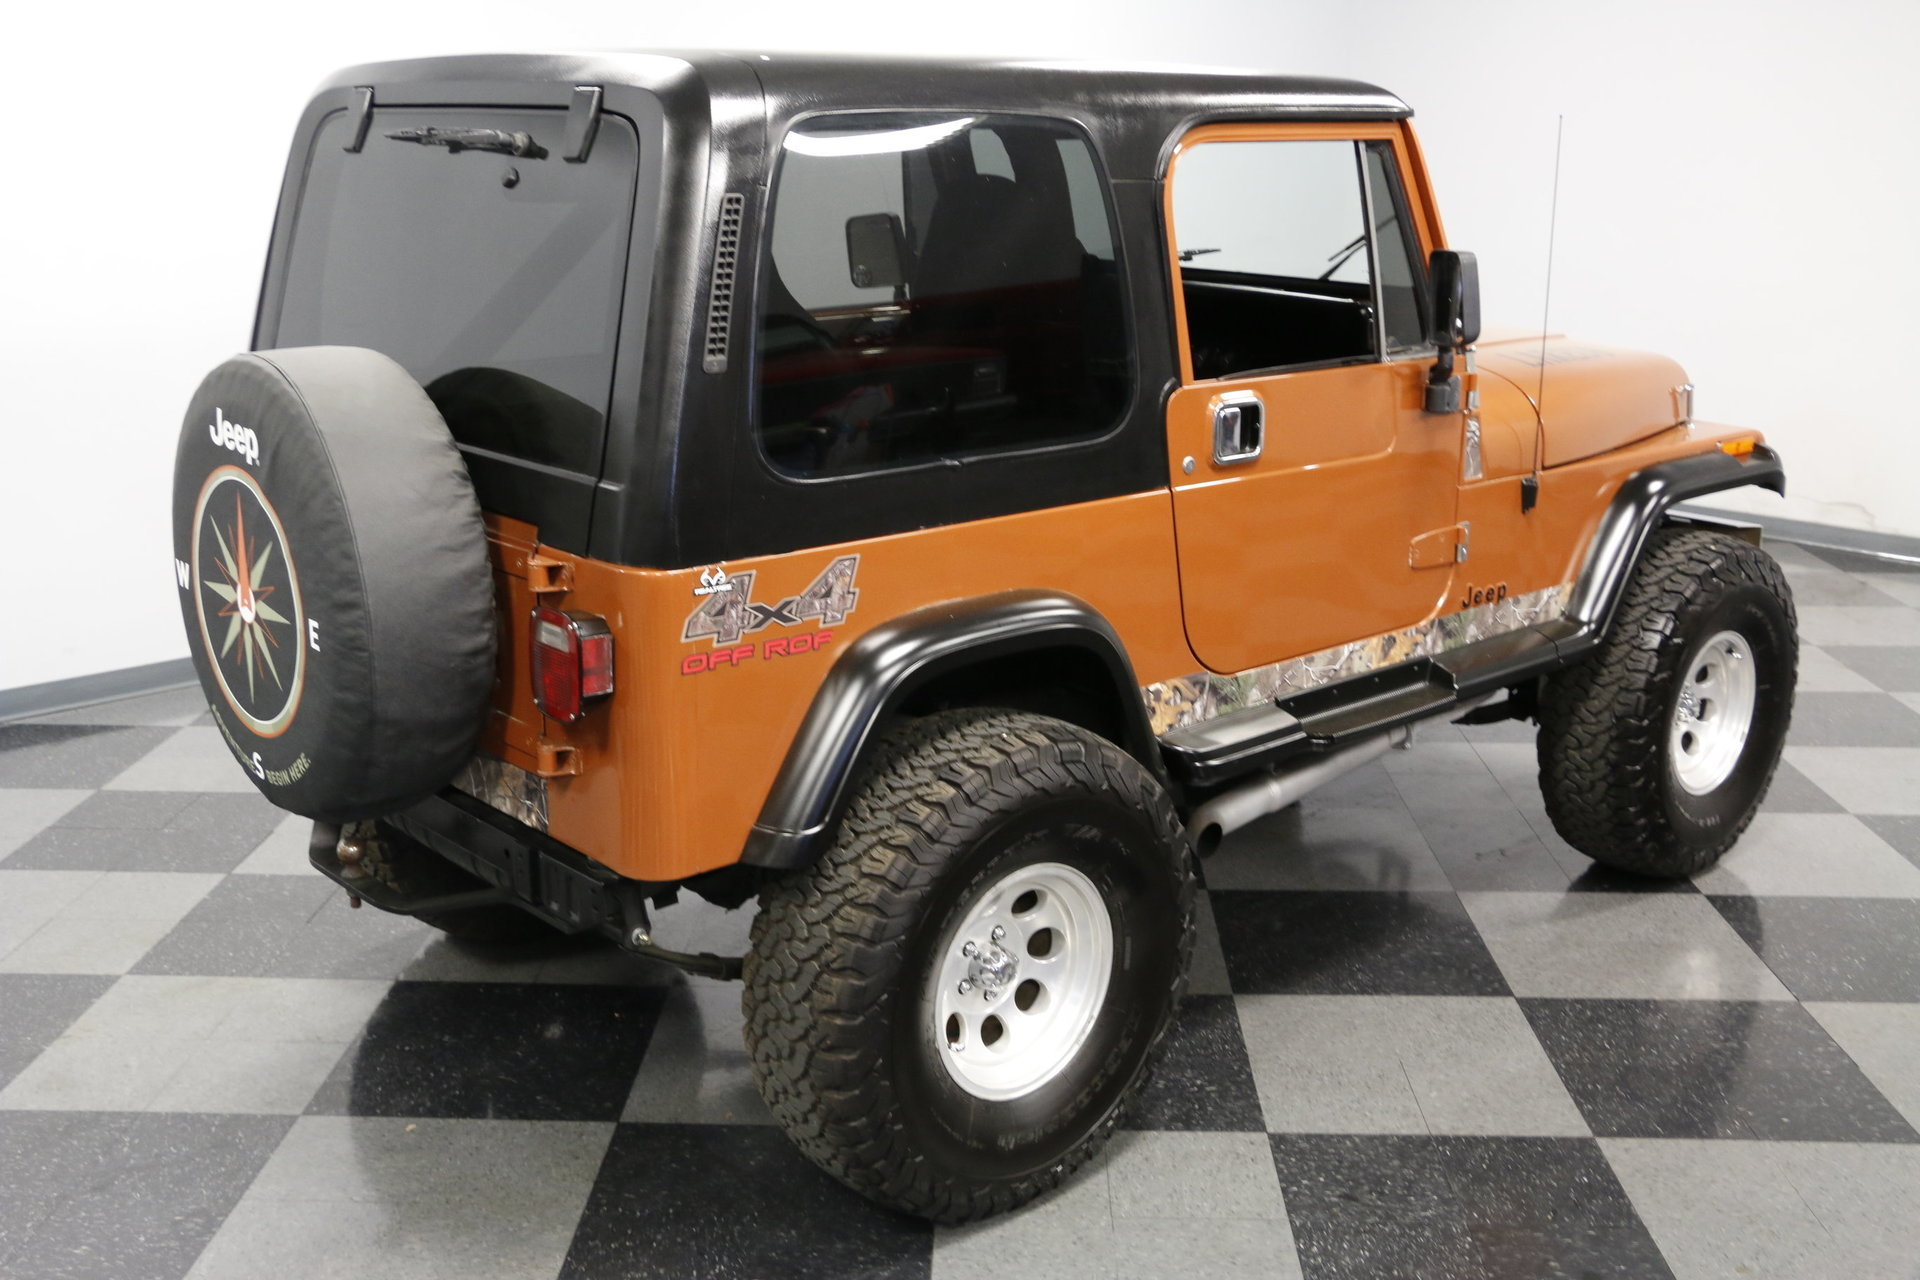 1988 Jeep Wrangler Streetside Classics The Nations Trusted Hard Top View 360